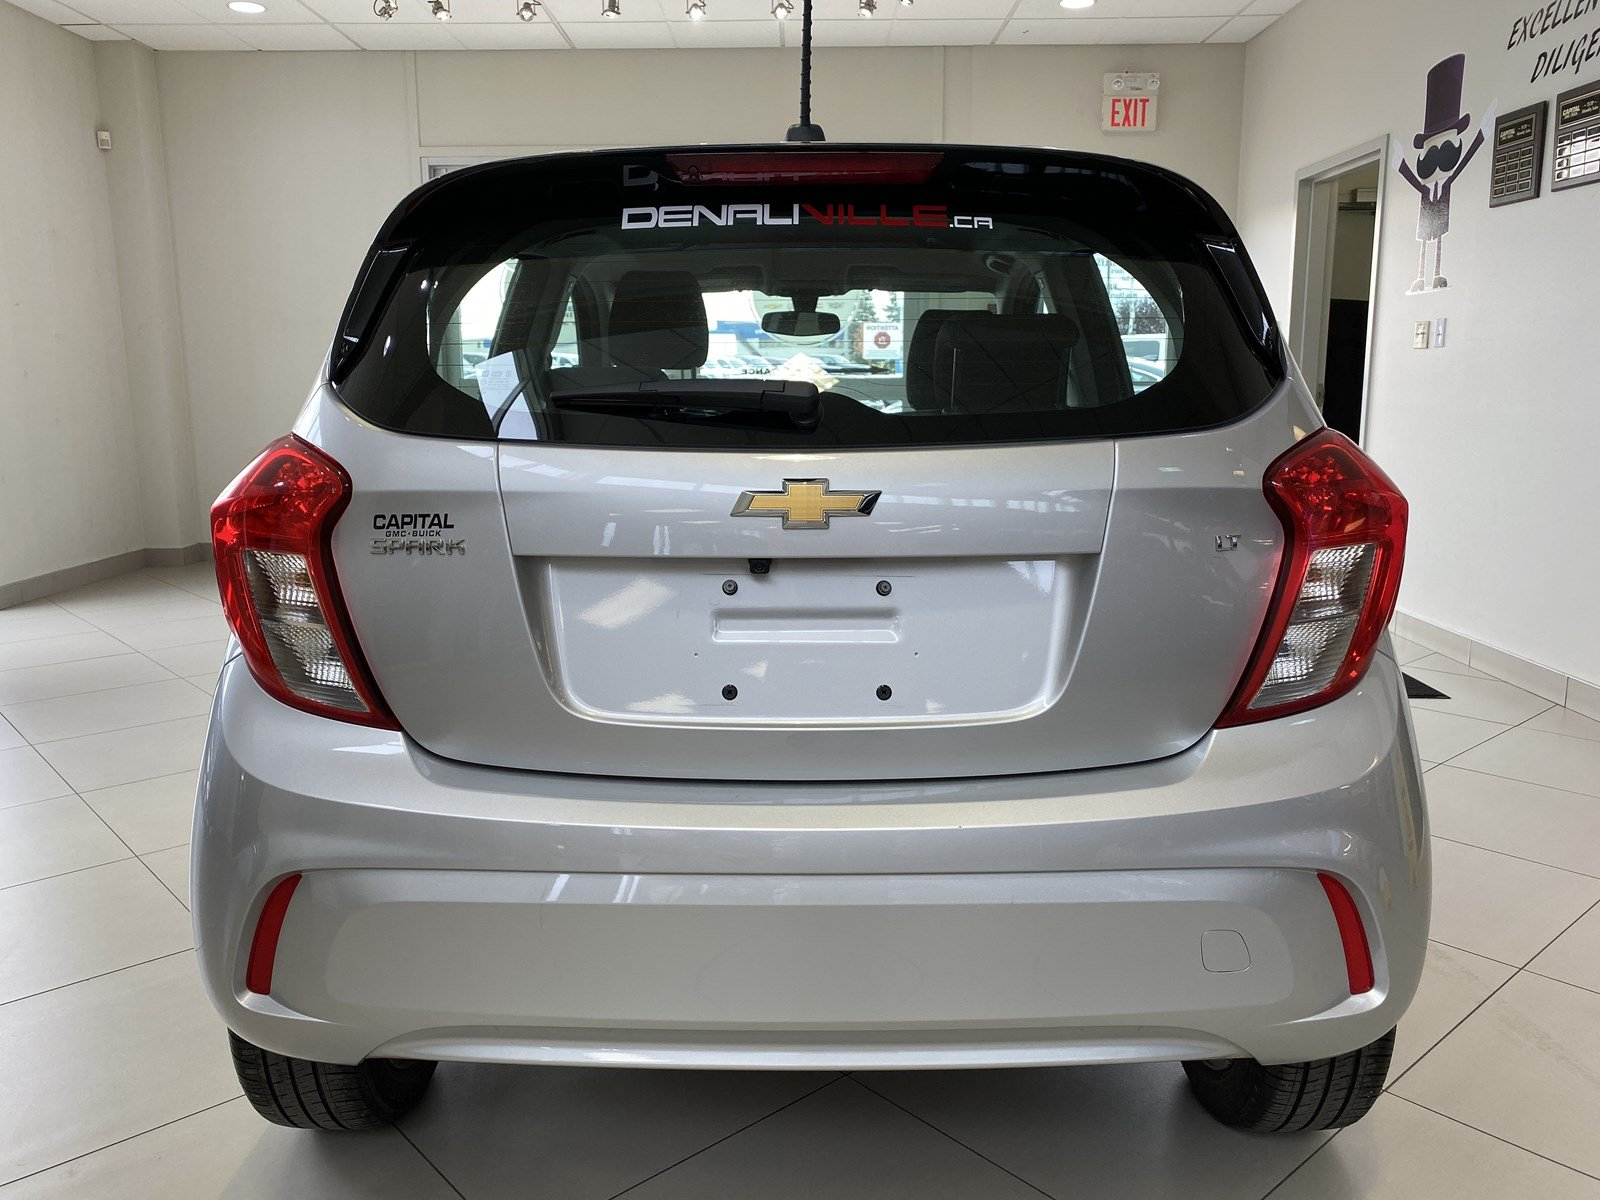 Certified Pre-Owned 2019 Chevrolet Spark LT CARPLAY BACKUP CAMERA AMAZING GAS MILEAGE